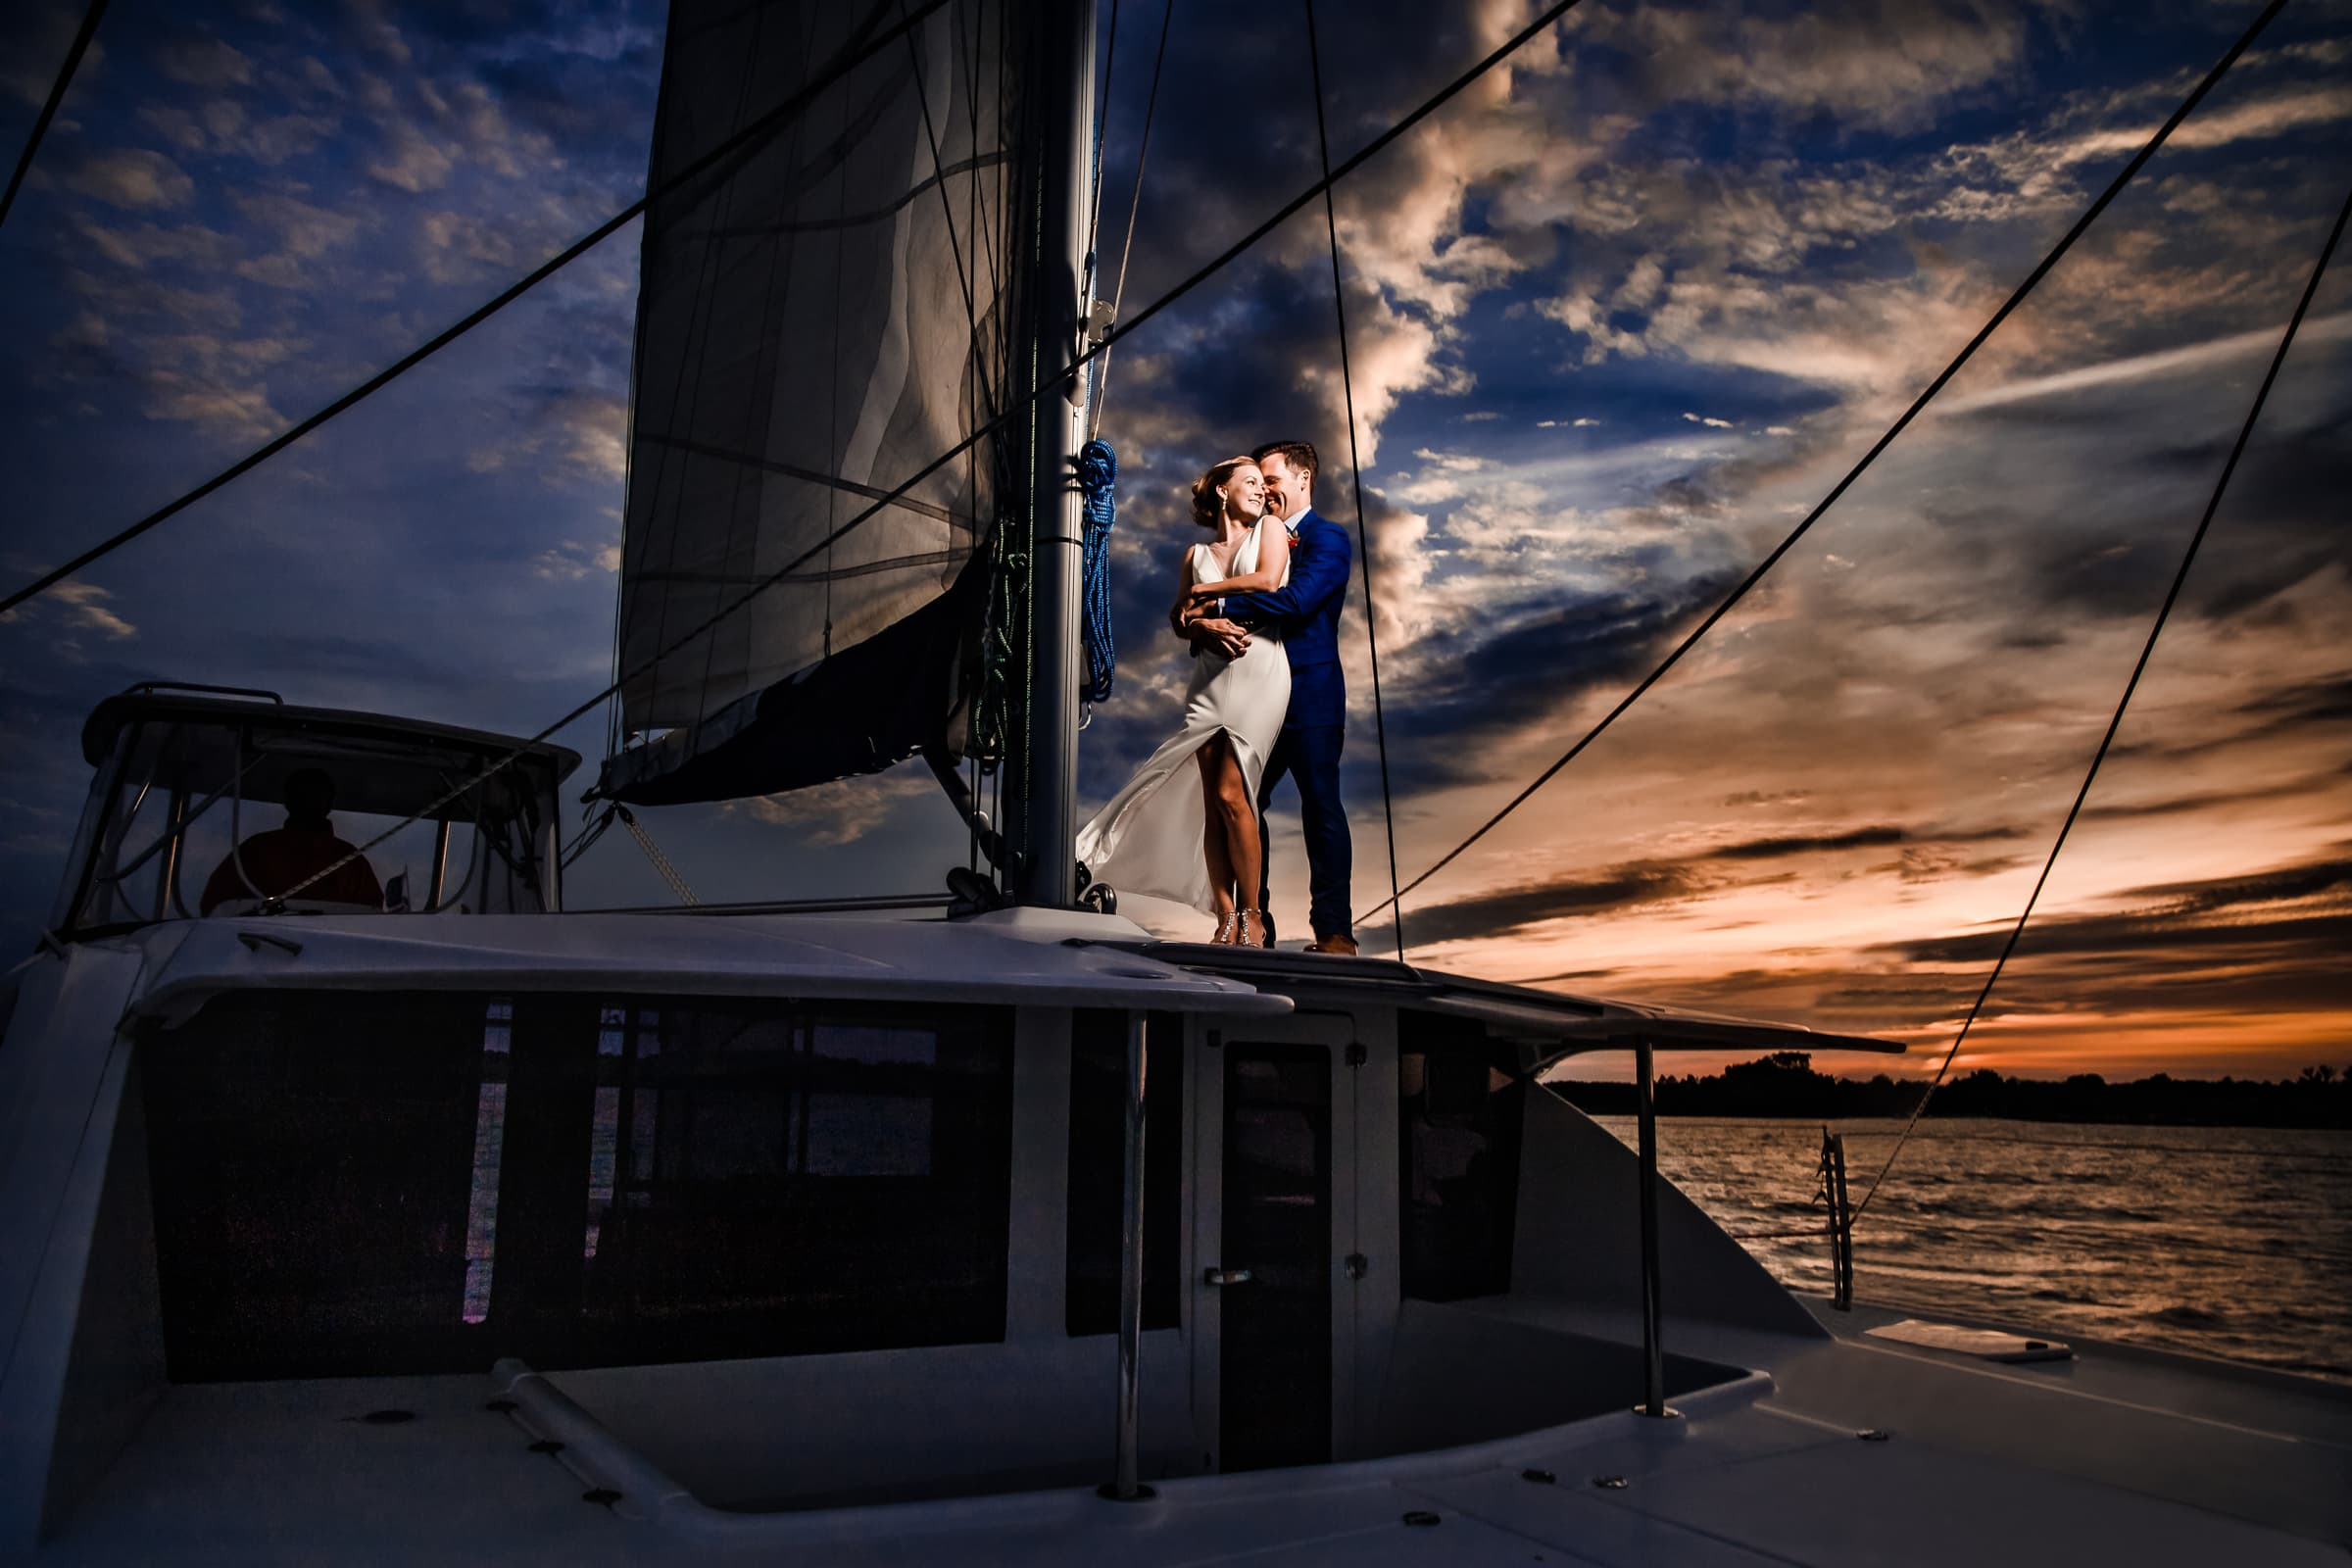 Beautiful portrait of bride and groom lit up at sunset on their catamaran sailboat for their Chesapeake Bay wedding.